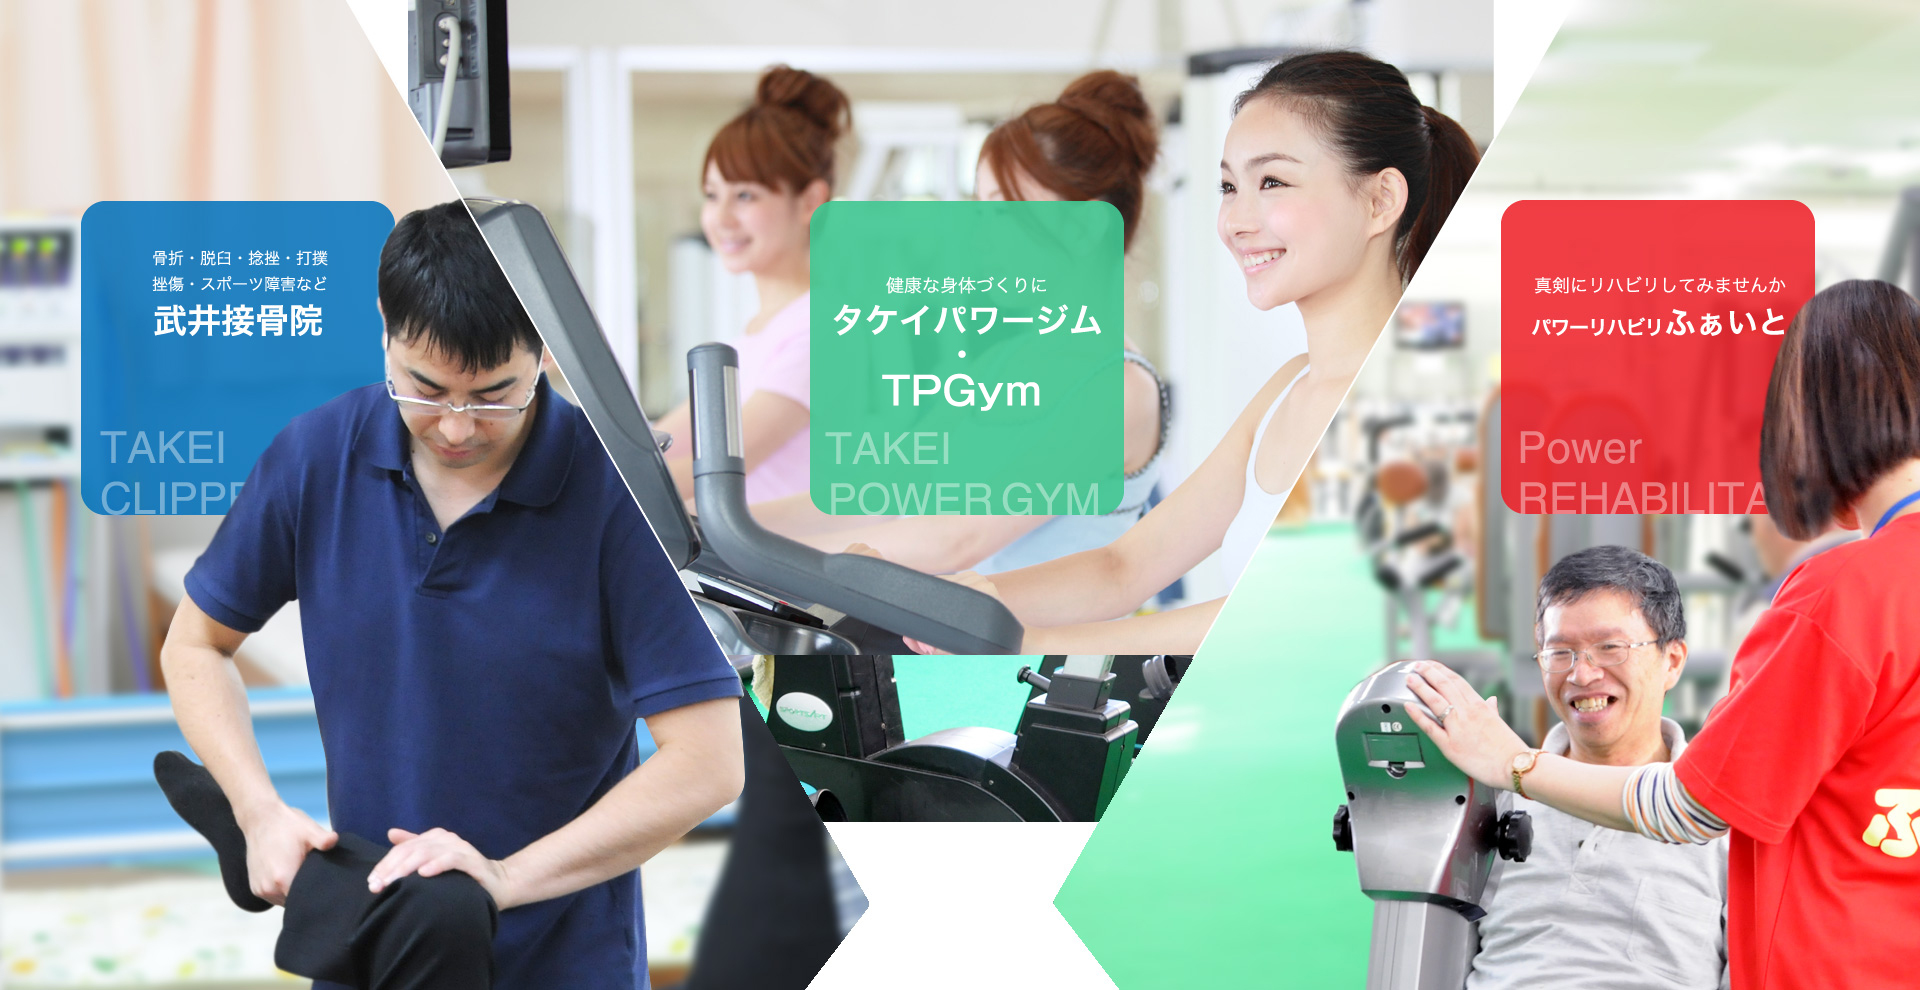 TAKEI CLIPP TAKEI POWER GYM Power REHABILITA